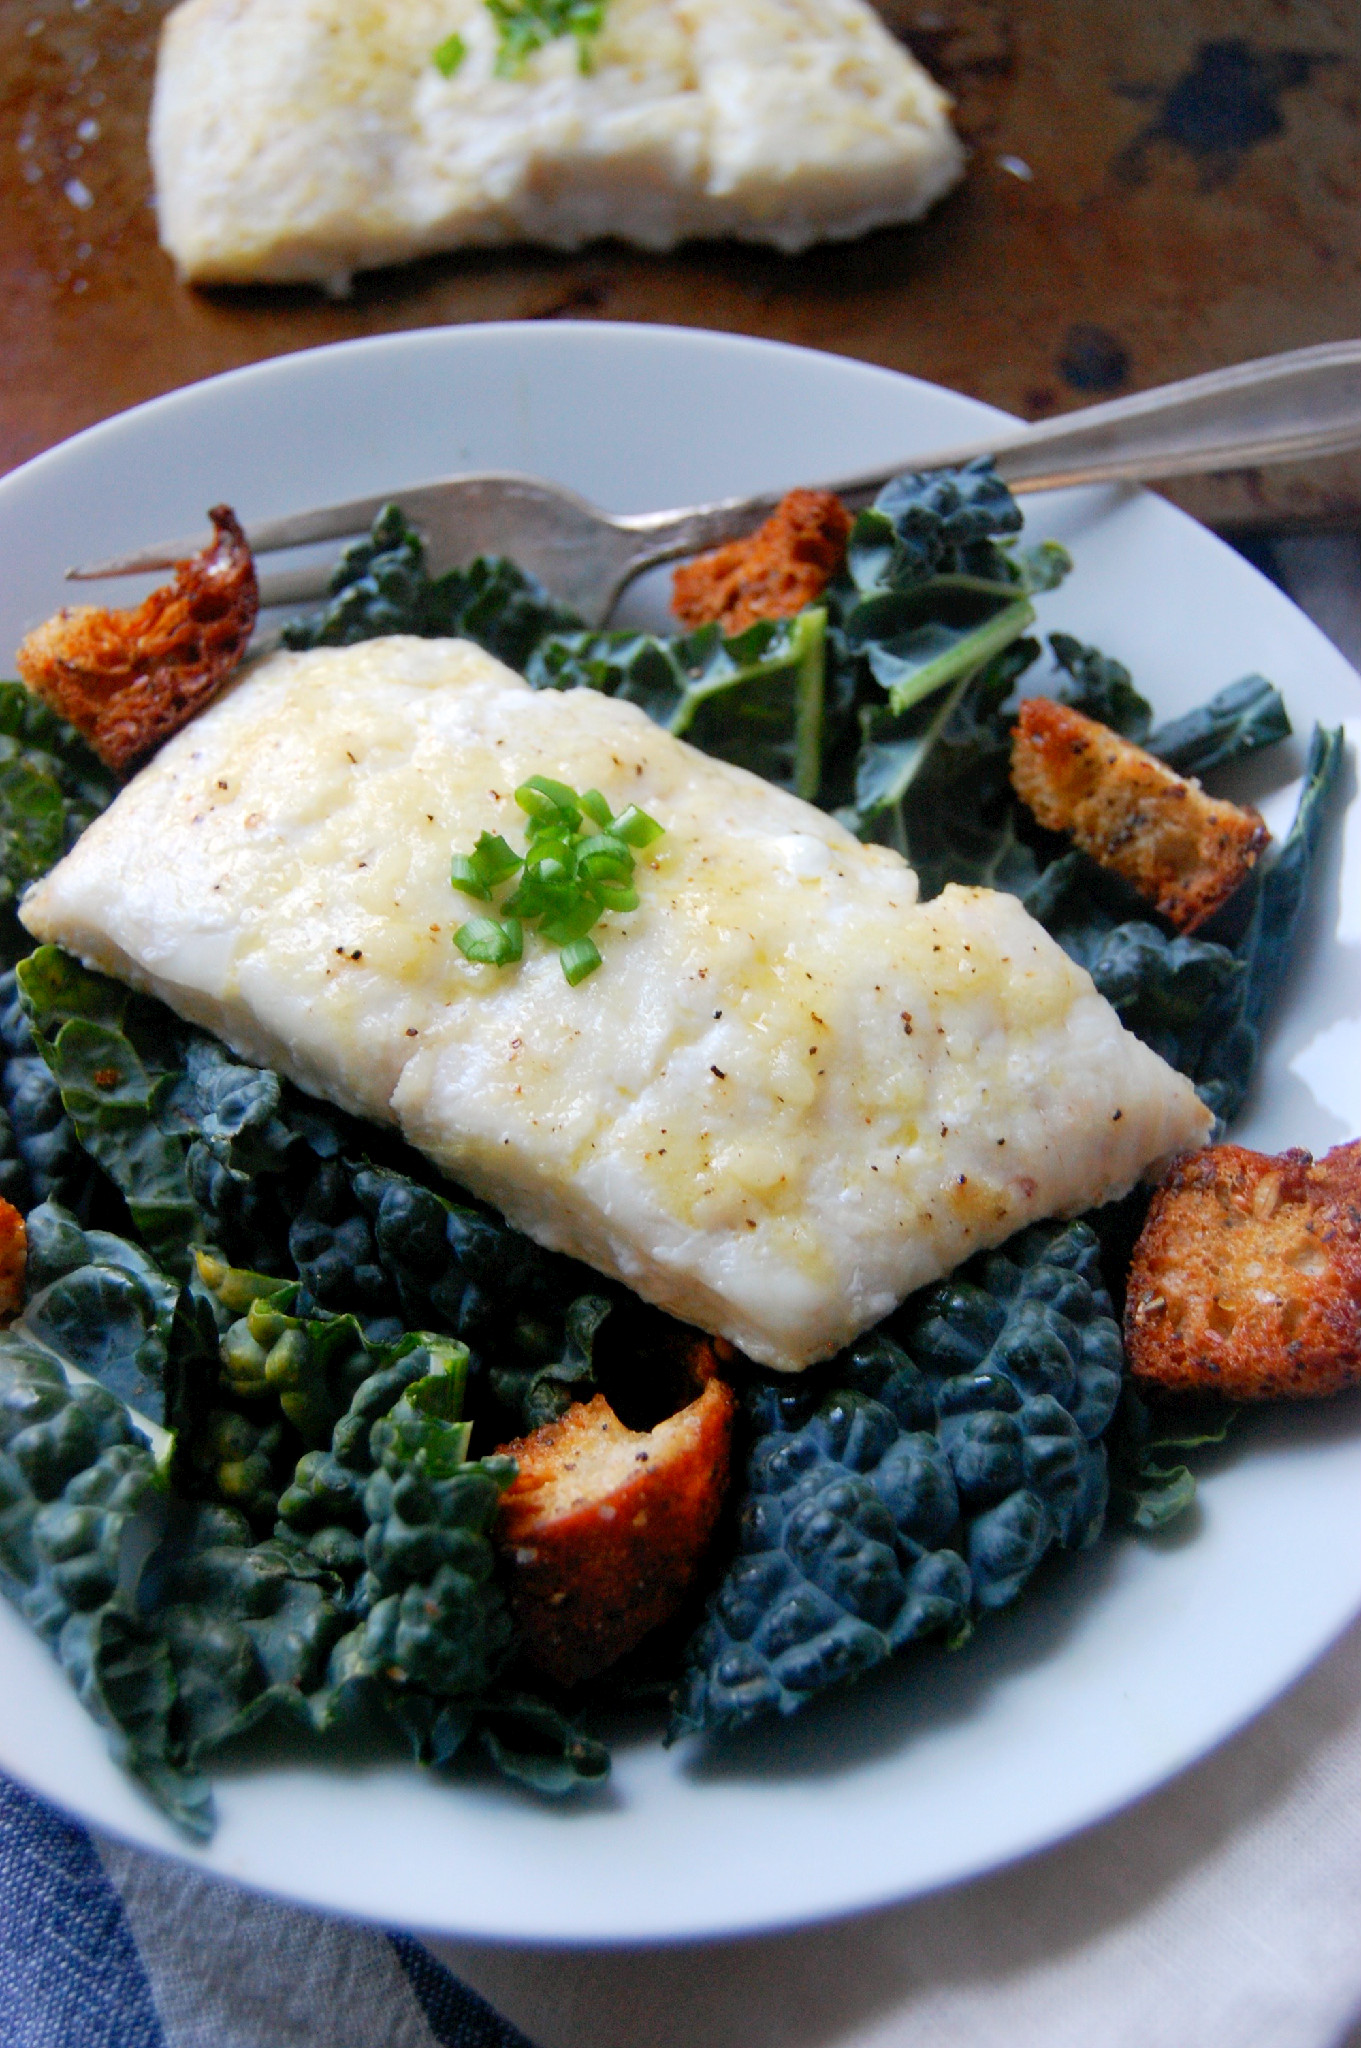 Haddock Cooking Recipes - Tasty, Fast and Very Useful 39